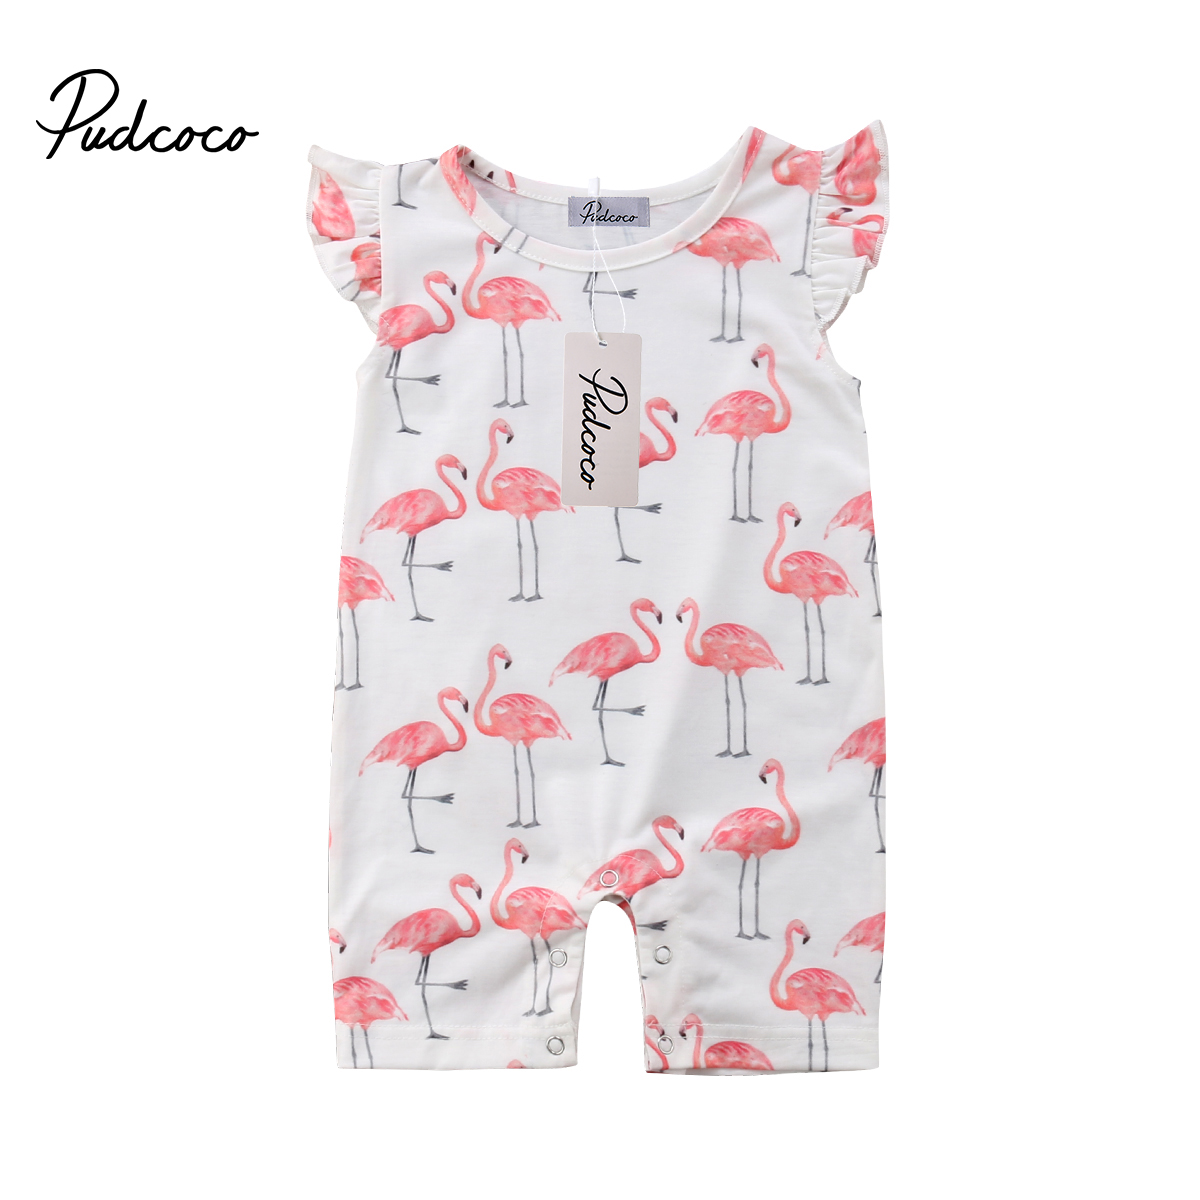 Cute Baby Rompers Toddler Kids Baby Girl Flamingo Jumpsuit Short Sleeve Romper Harem Trousers Jumper Girl Clothes Outfits